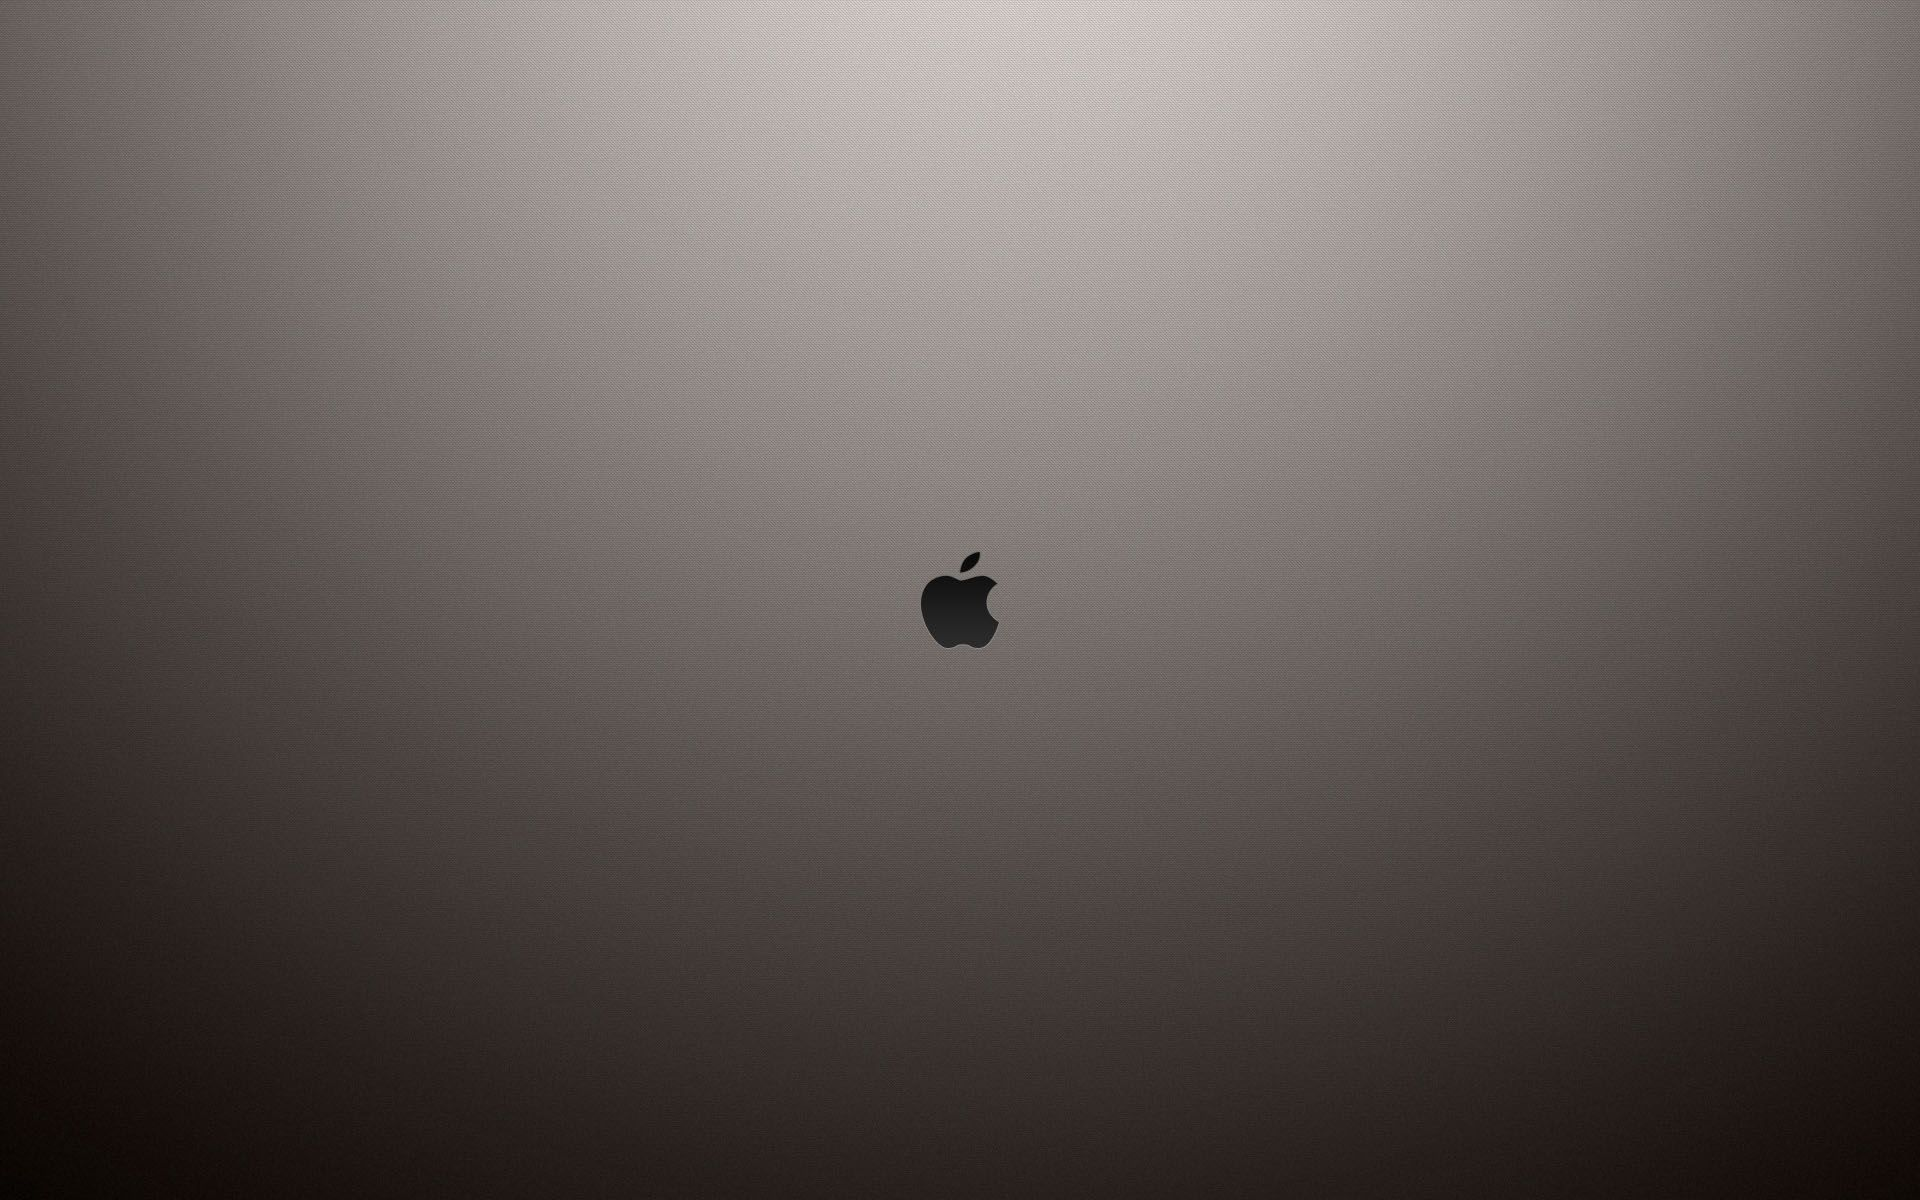 Hd Apple Logo Desktop Wallpaper Jpg 1920 1200 Apple Wallpaper Computer Wallpaper Hd Apple Logo Wallpaper